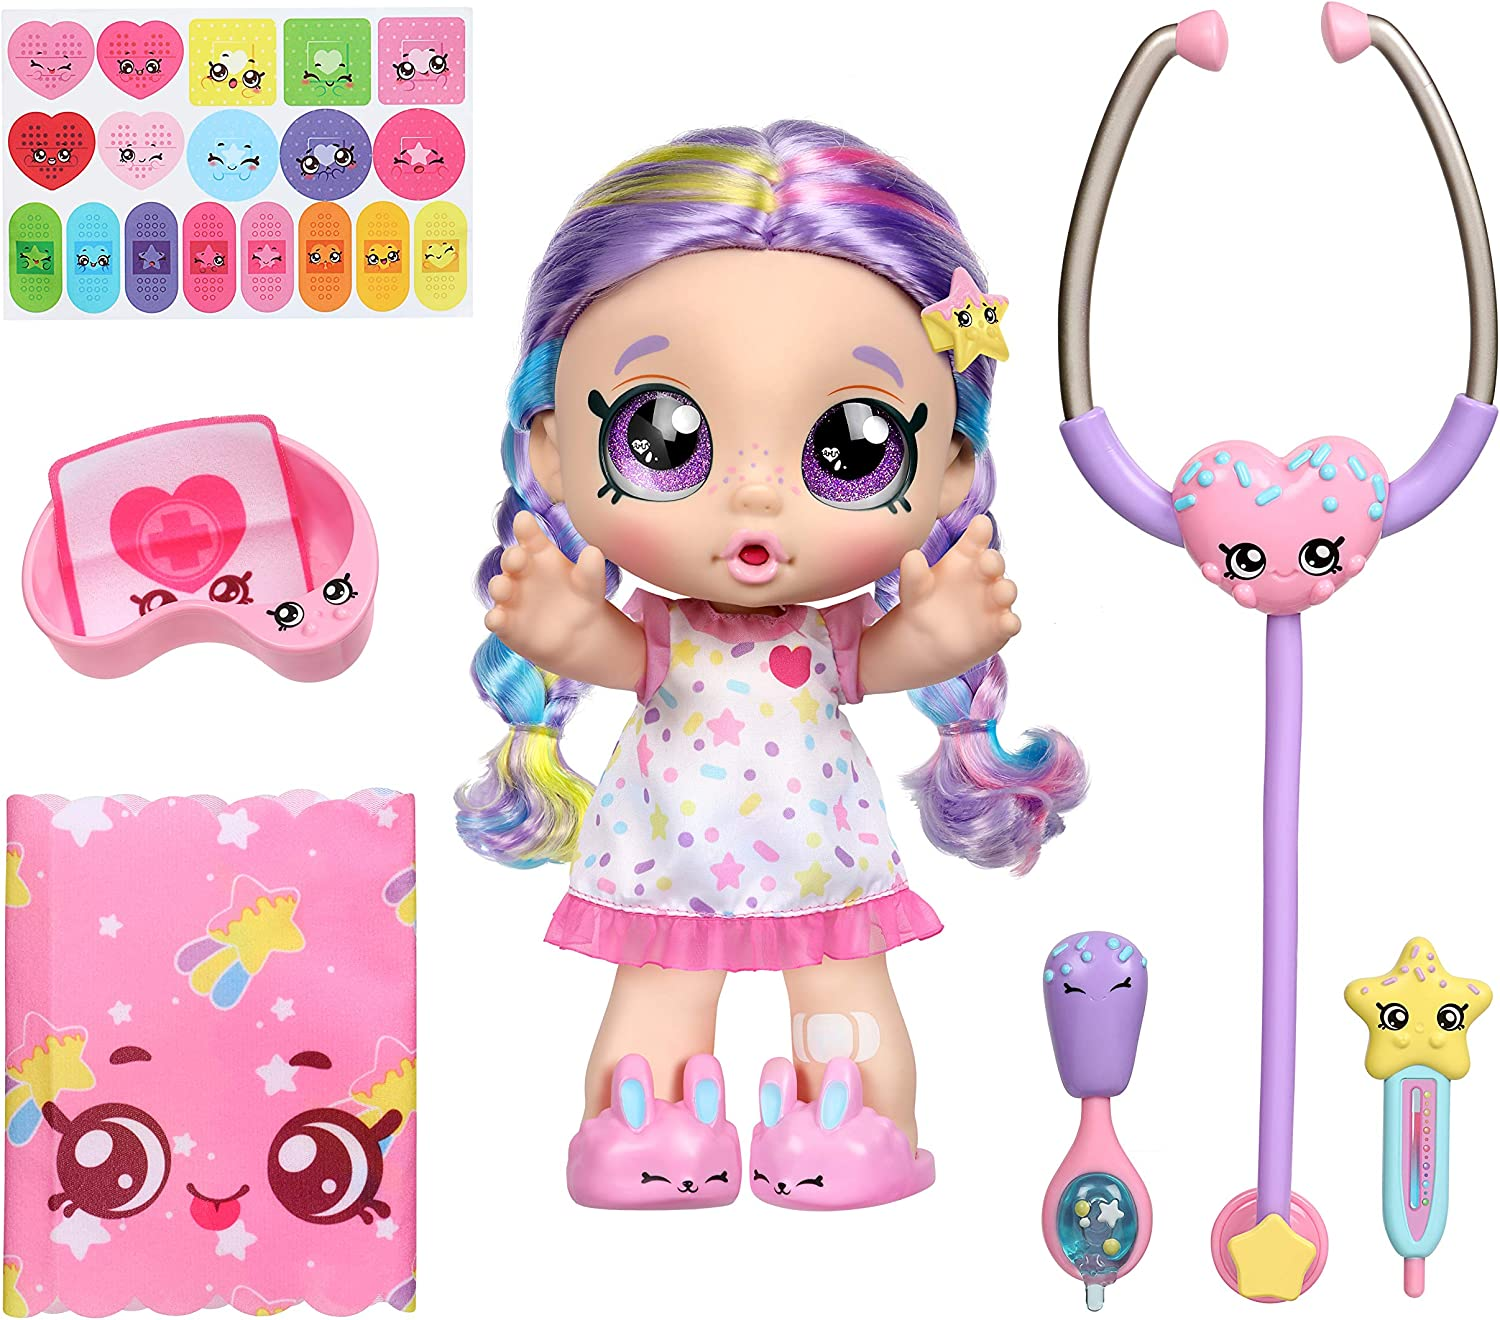 Kindi Kids Toddler Doll – Shiver and Shake Rainbow Kate – Interactive Talking Toy with Shopkins Accessories 25% OFF £29.99 @ Amazon